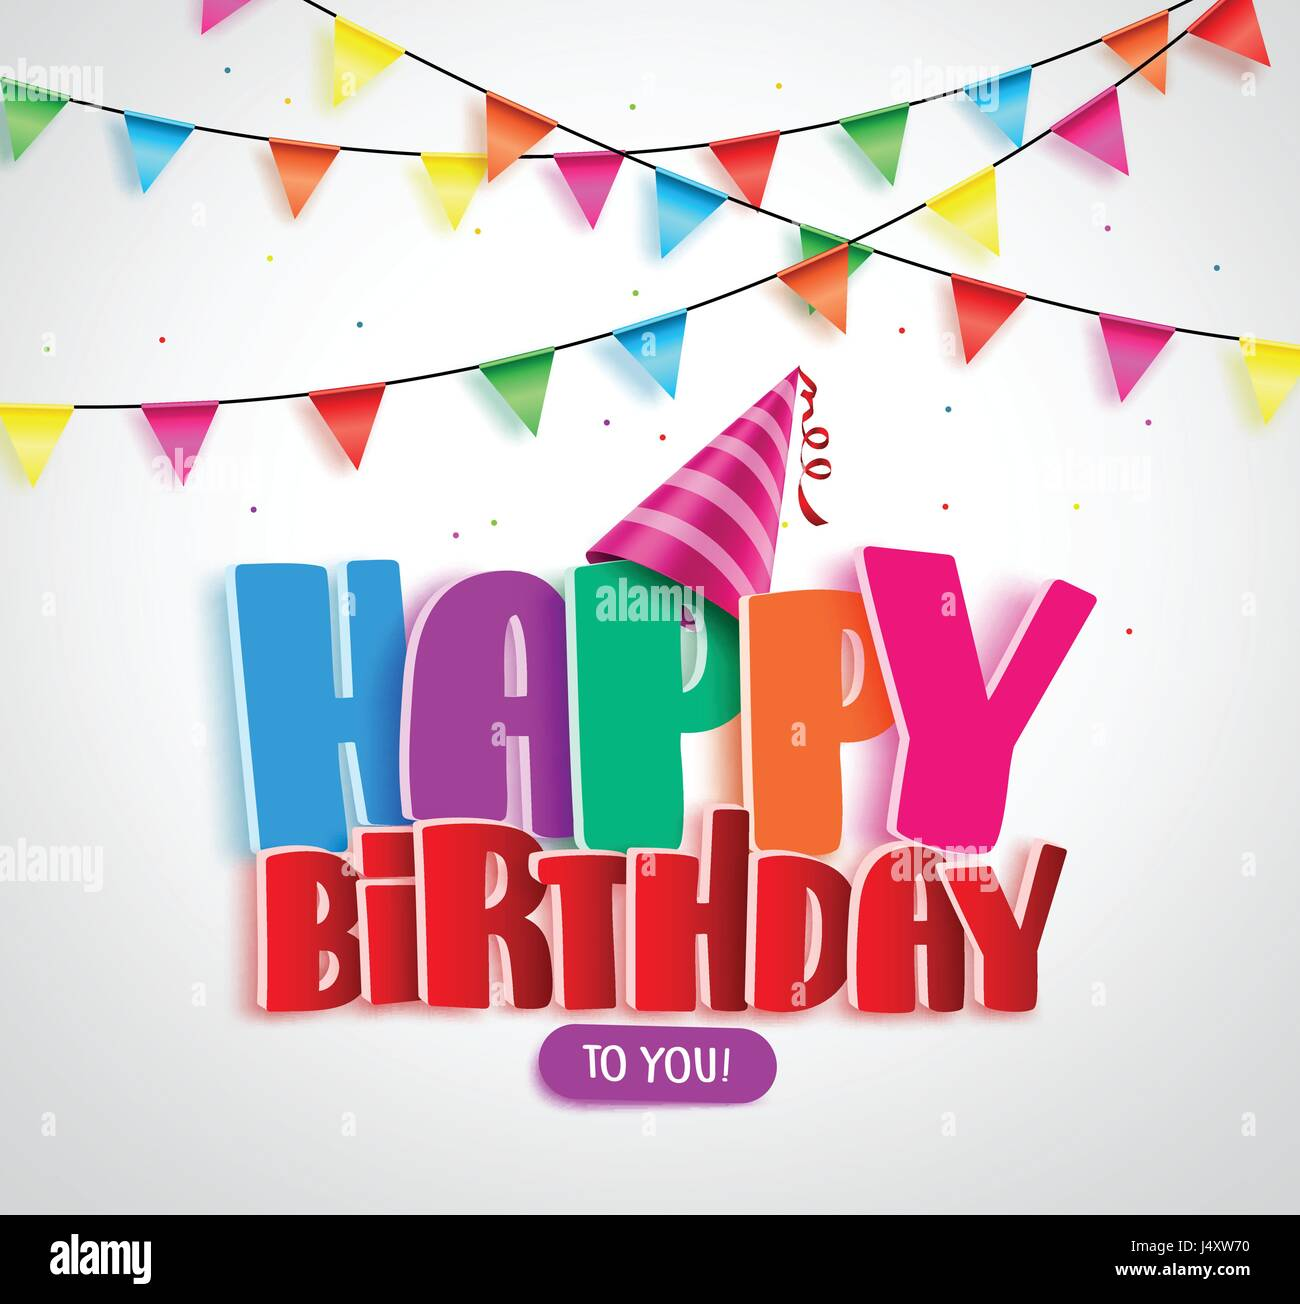 Happy Birthday Vector Banner Design With Colorful Text And